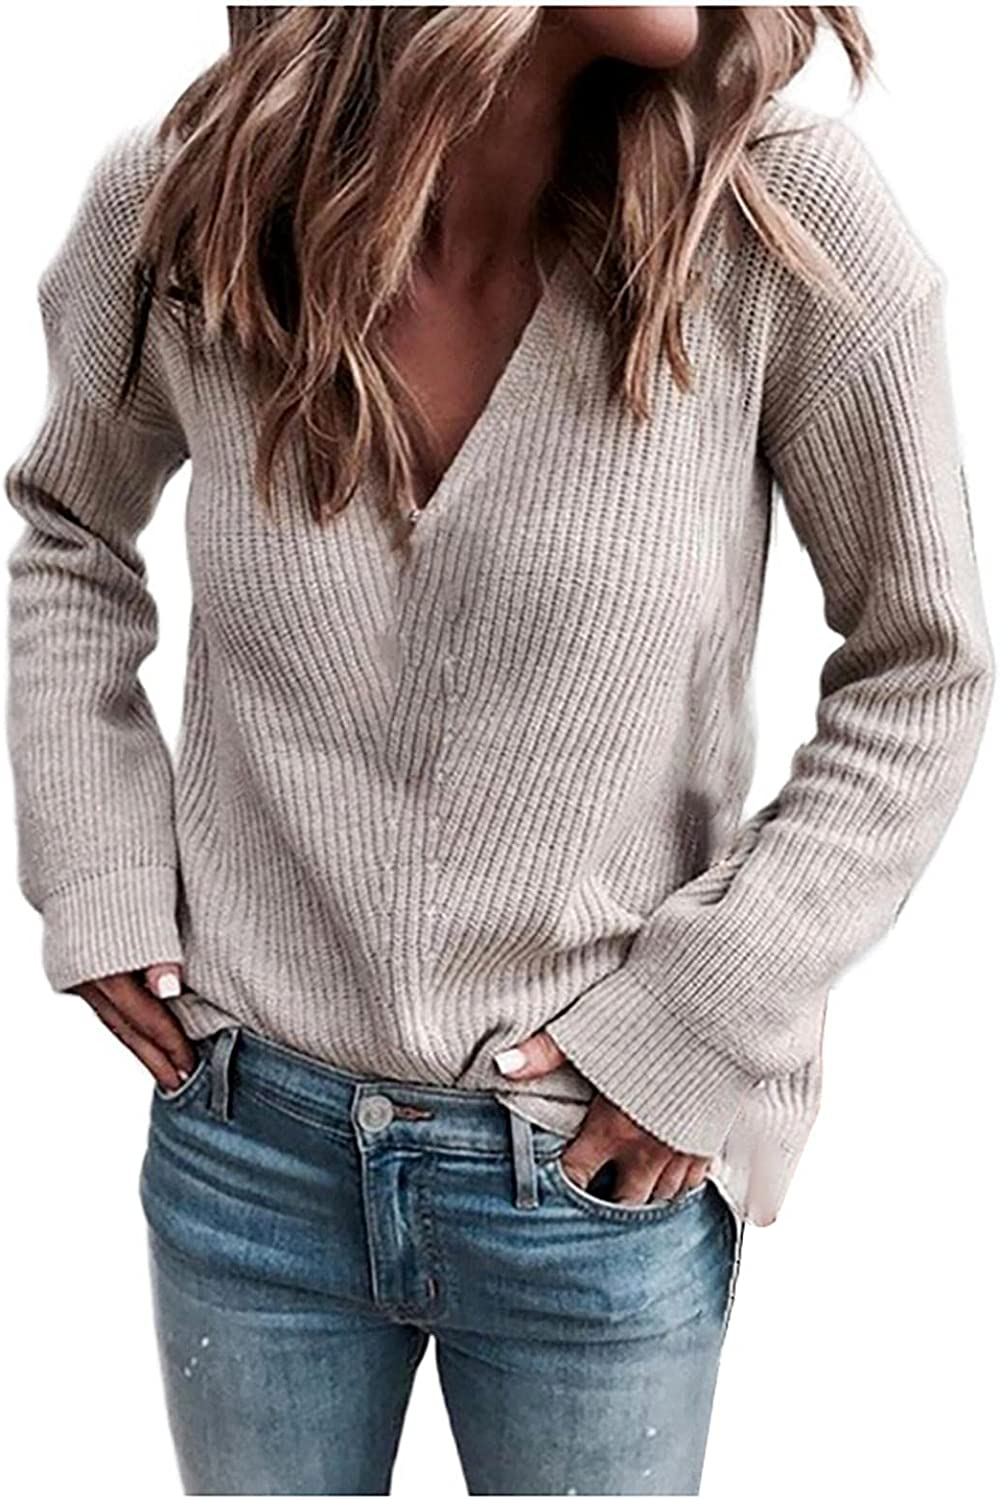 Gibobby Sweaters for Women,Women's Pullover Oversized Sweaters V Neck Casual Tops Long Sleeve Loose Knitted Soft Sweater